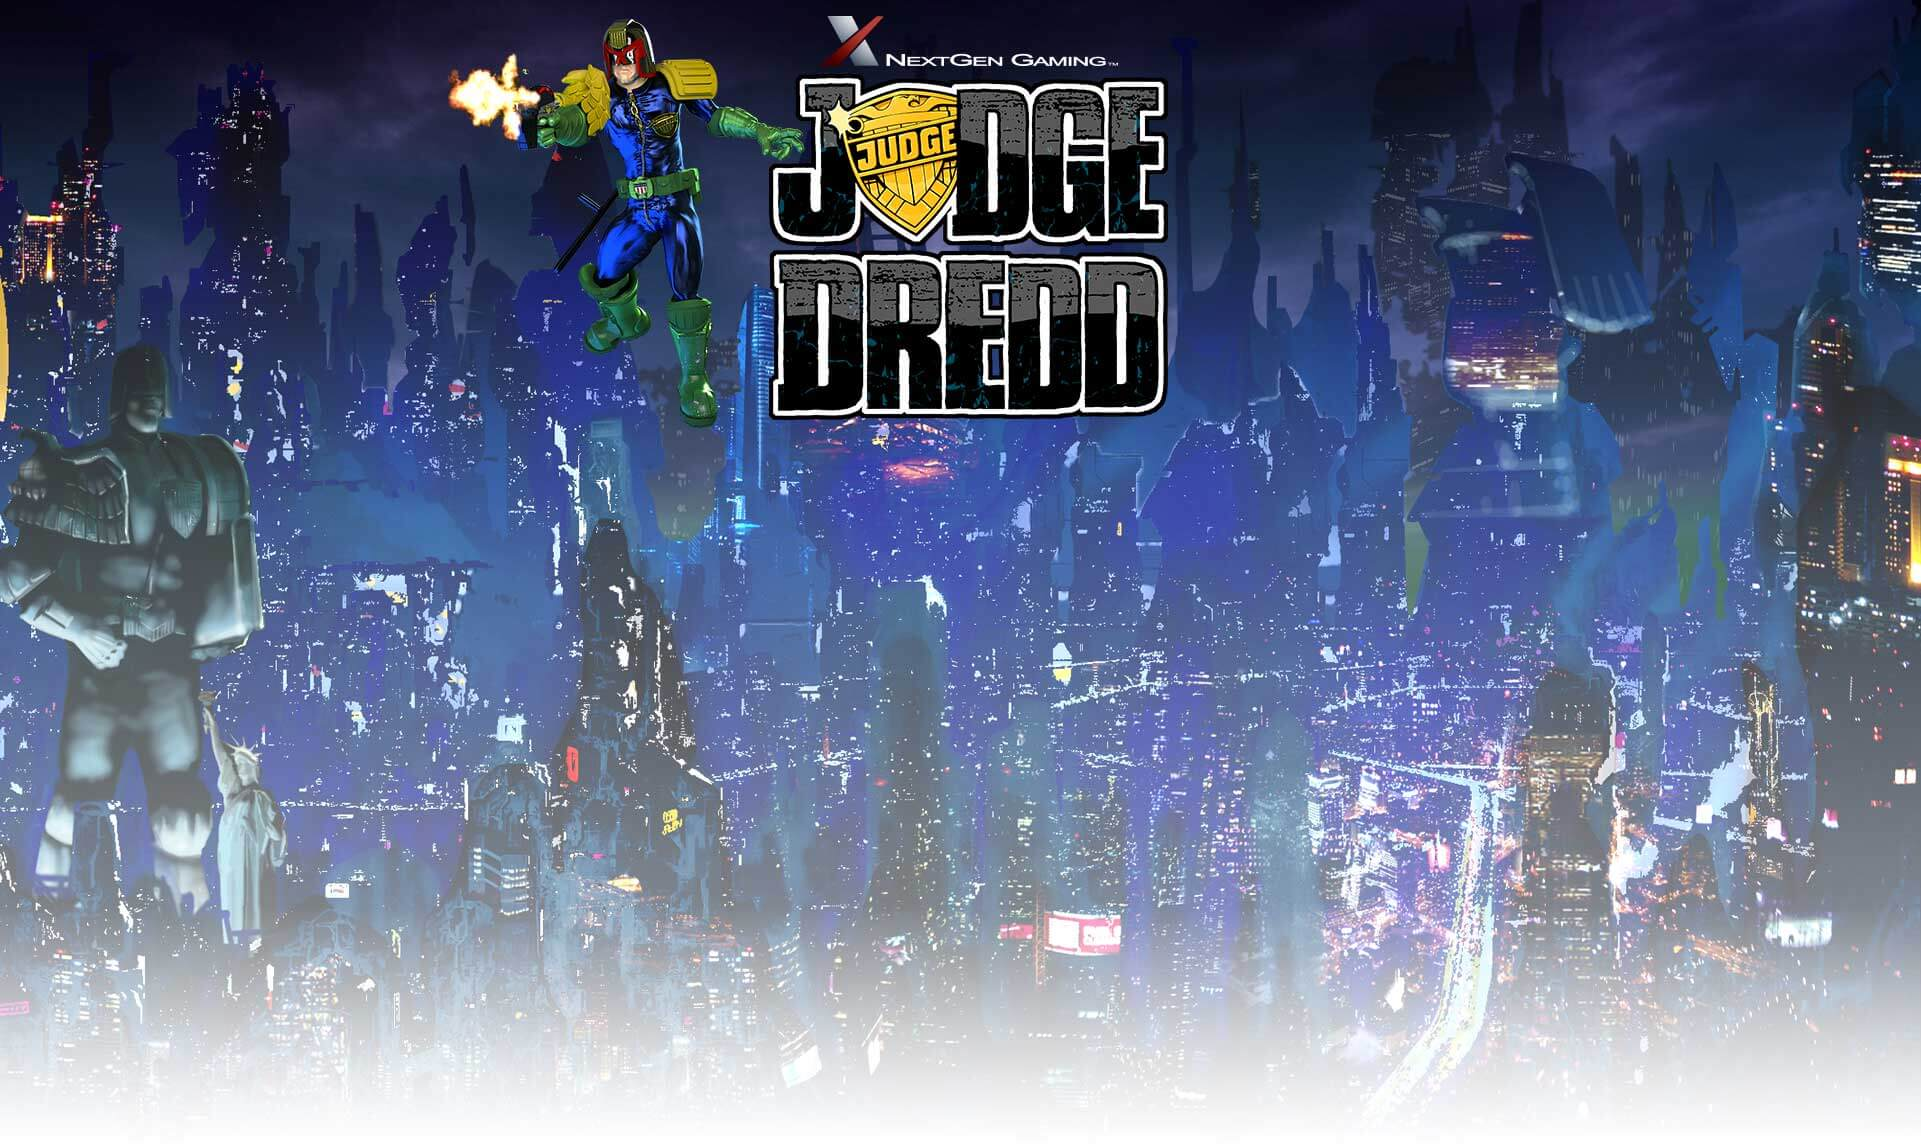 Judge Dredd Slot Review & Guide for Players Online